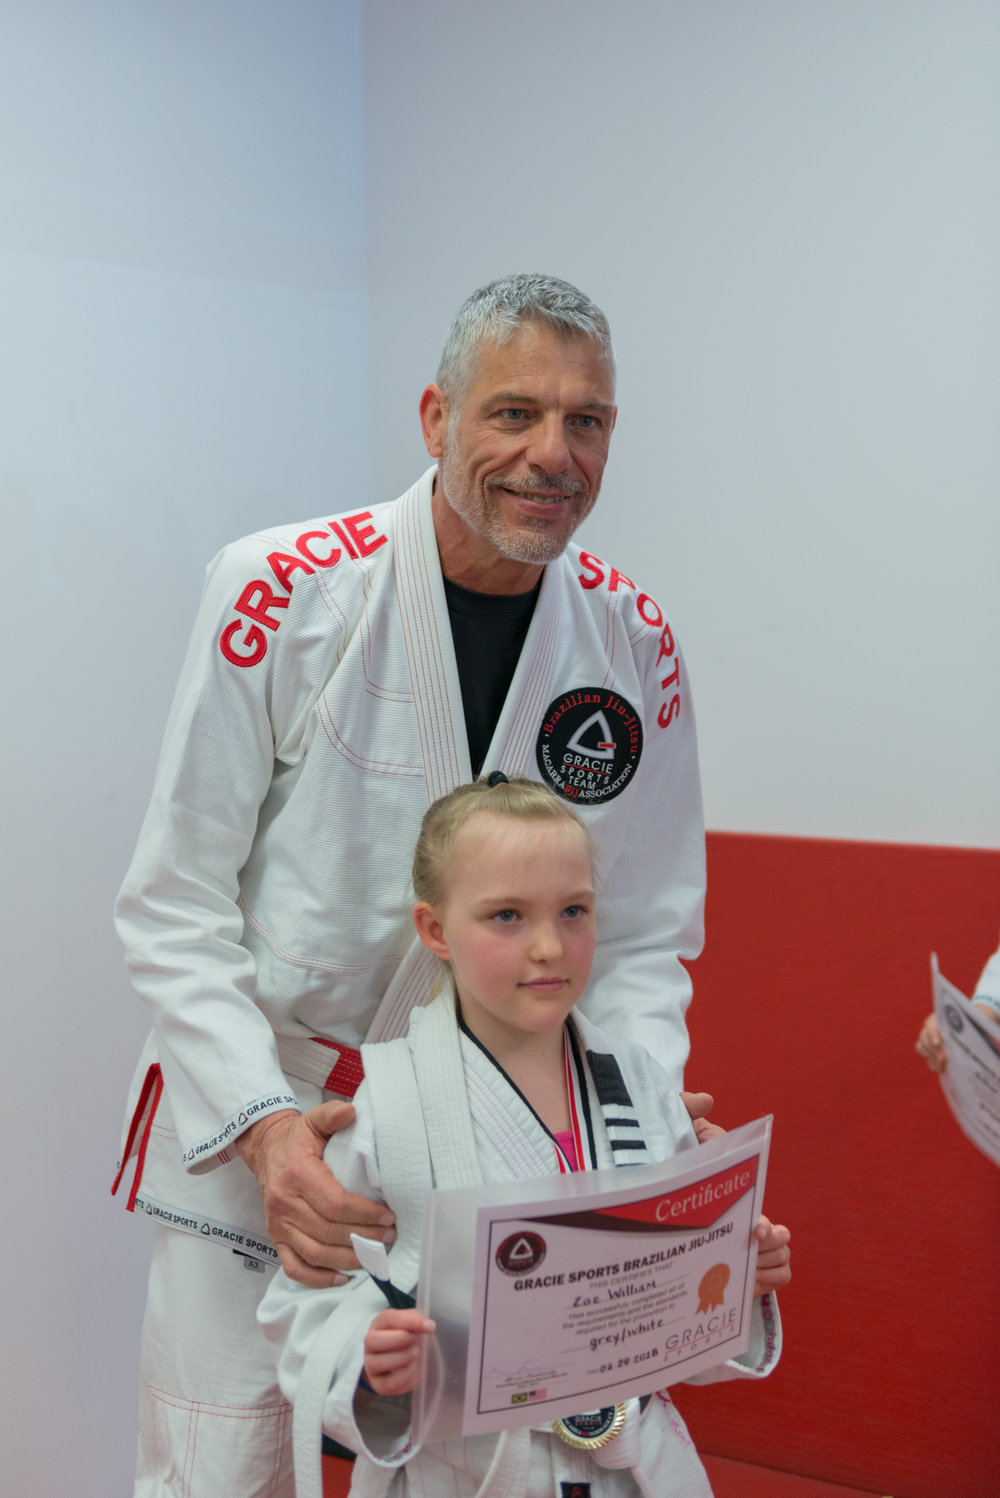 Gracie-Sports-Kids-158.jpg